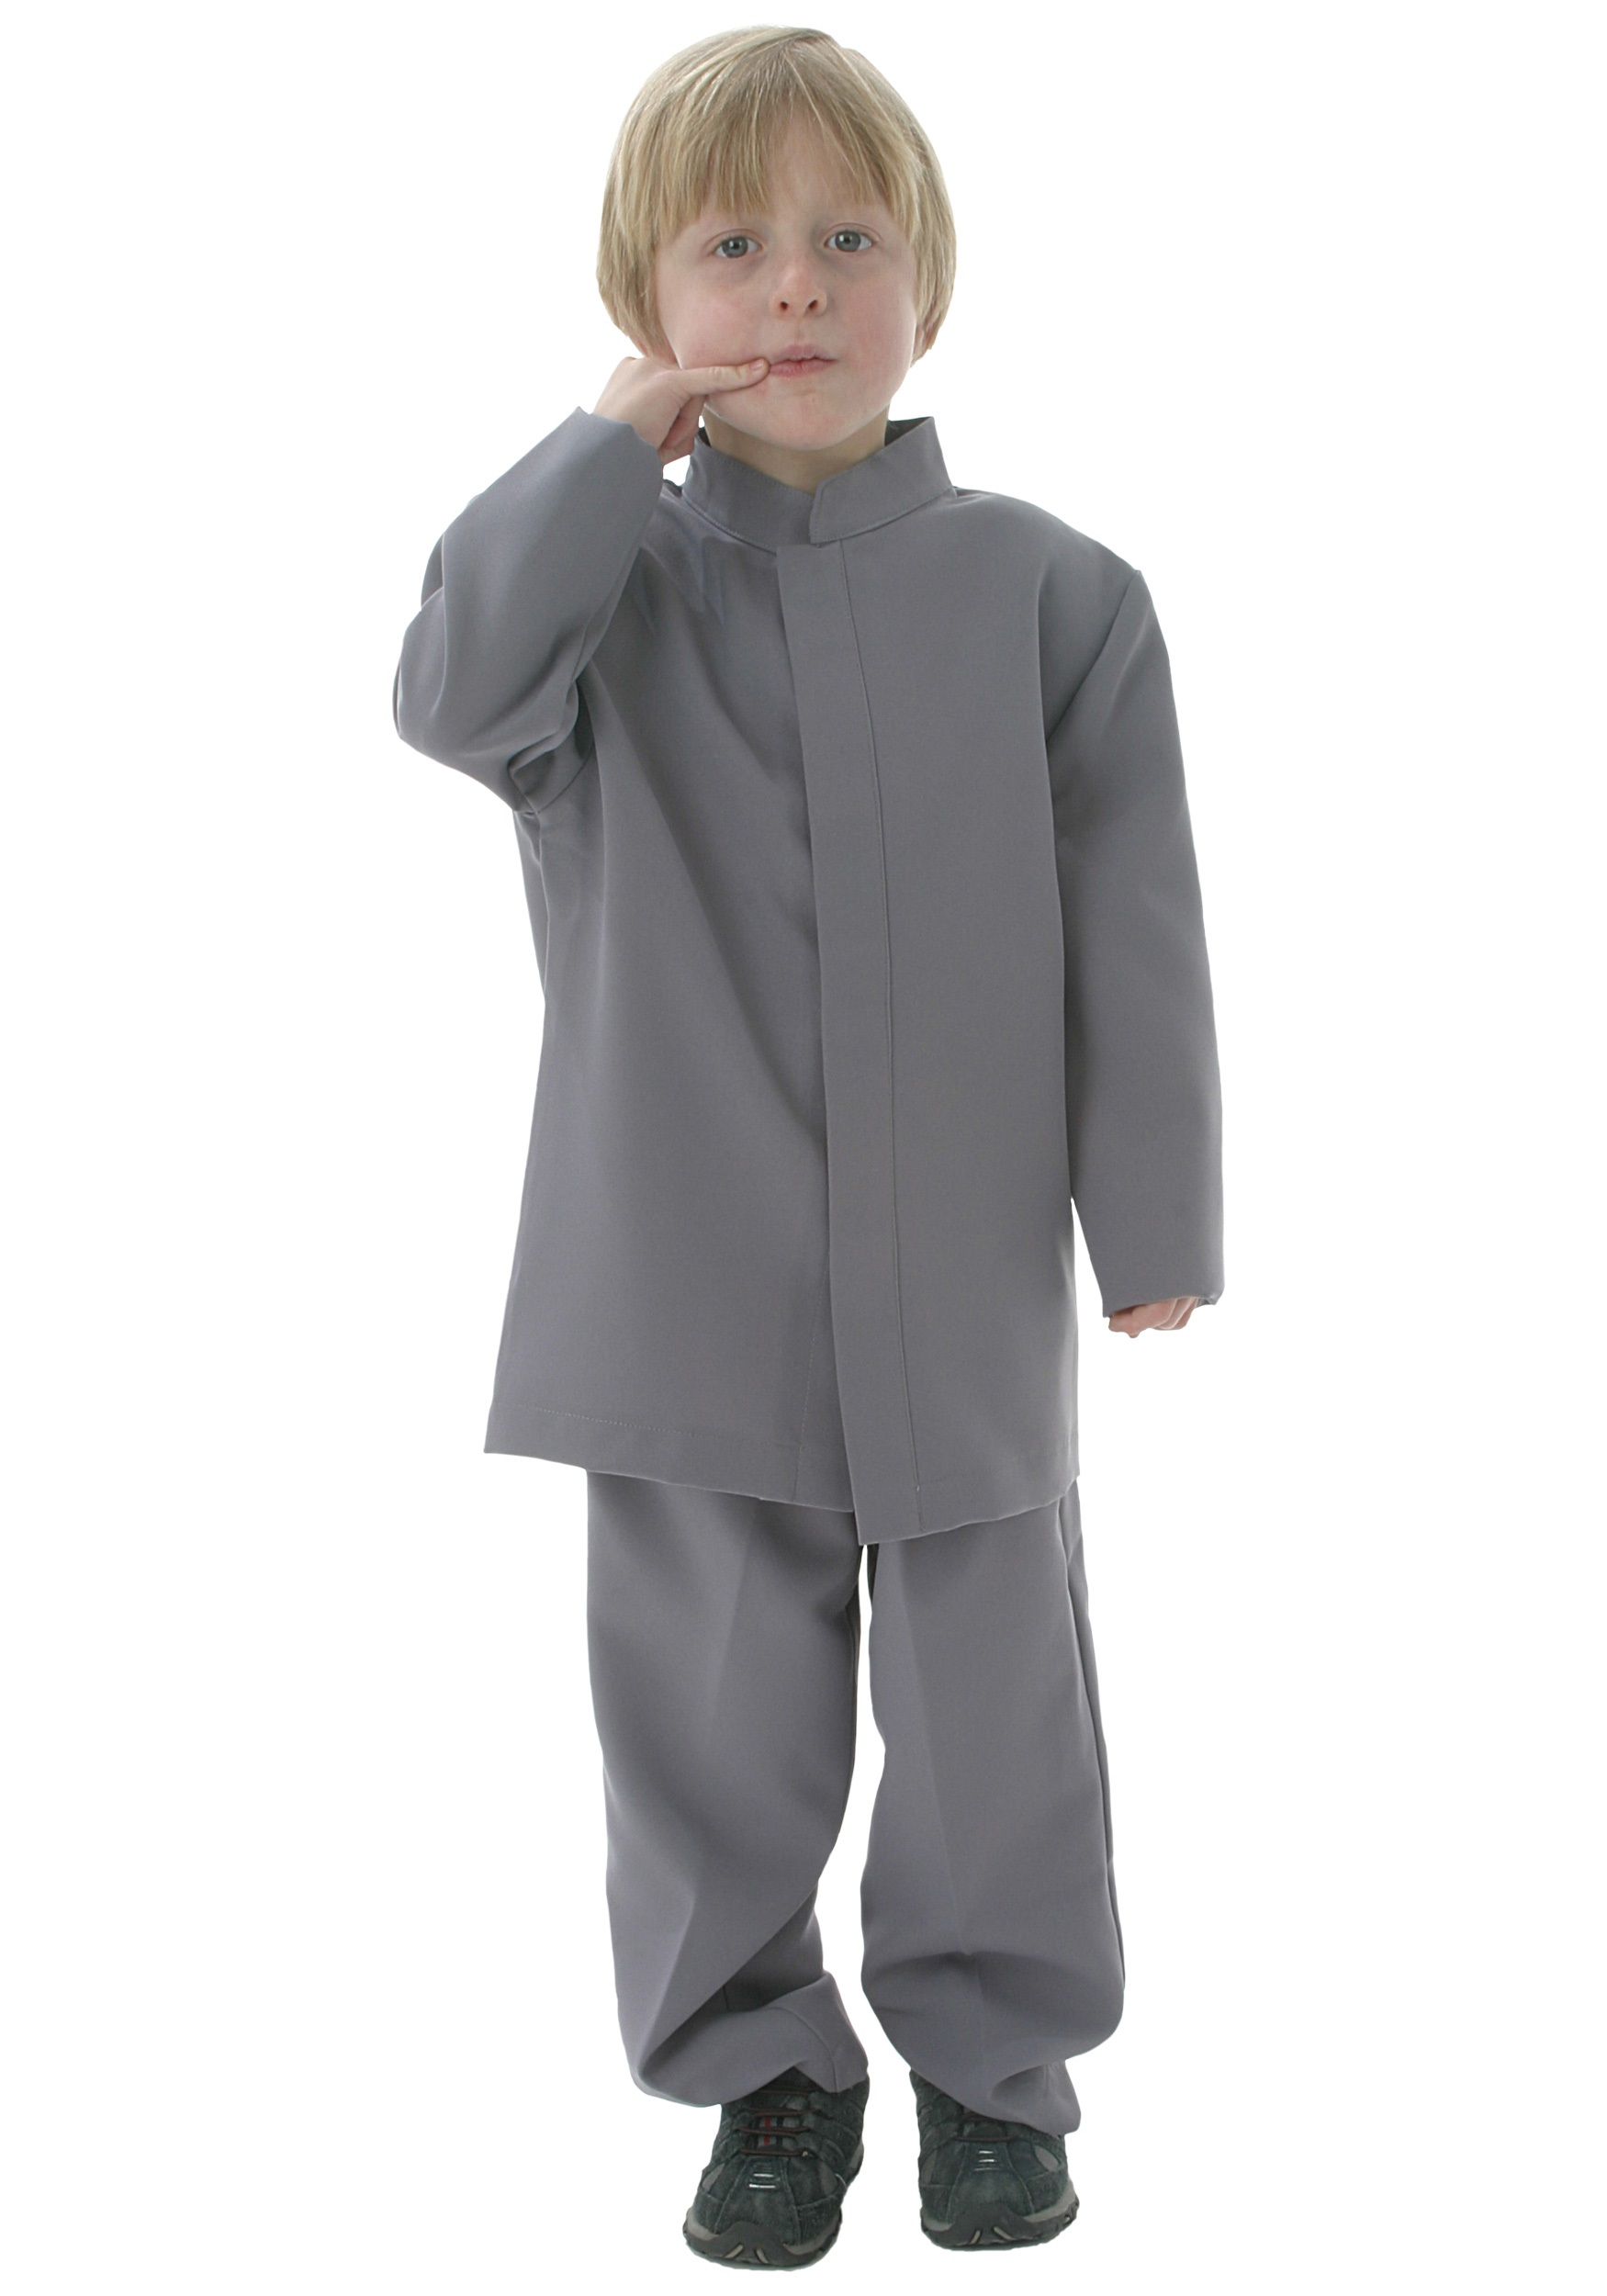 Toddler Grey Suit Costume  sc 1 st  Halloween Costumes : austin powers halloween costume  - Germanpascual.Com